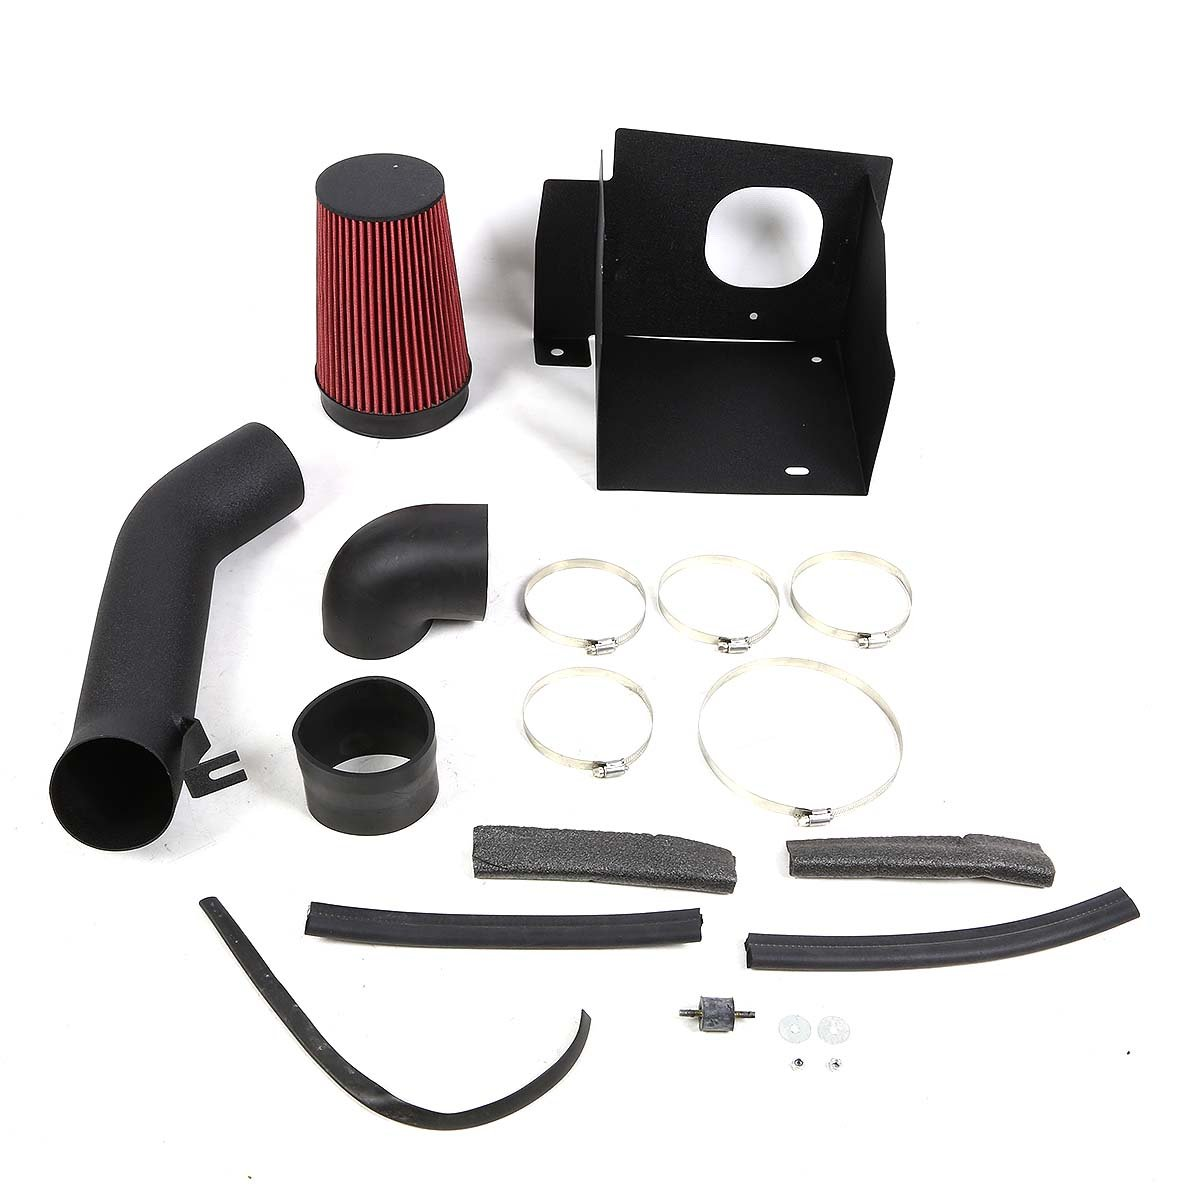 DNAMotoring AIP-2-HS-HUMMER0360L-BKBK Cold Air Intake System and Heat Shield